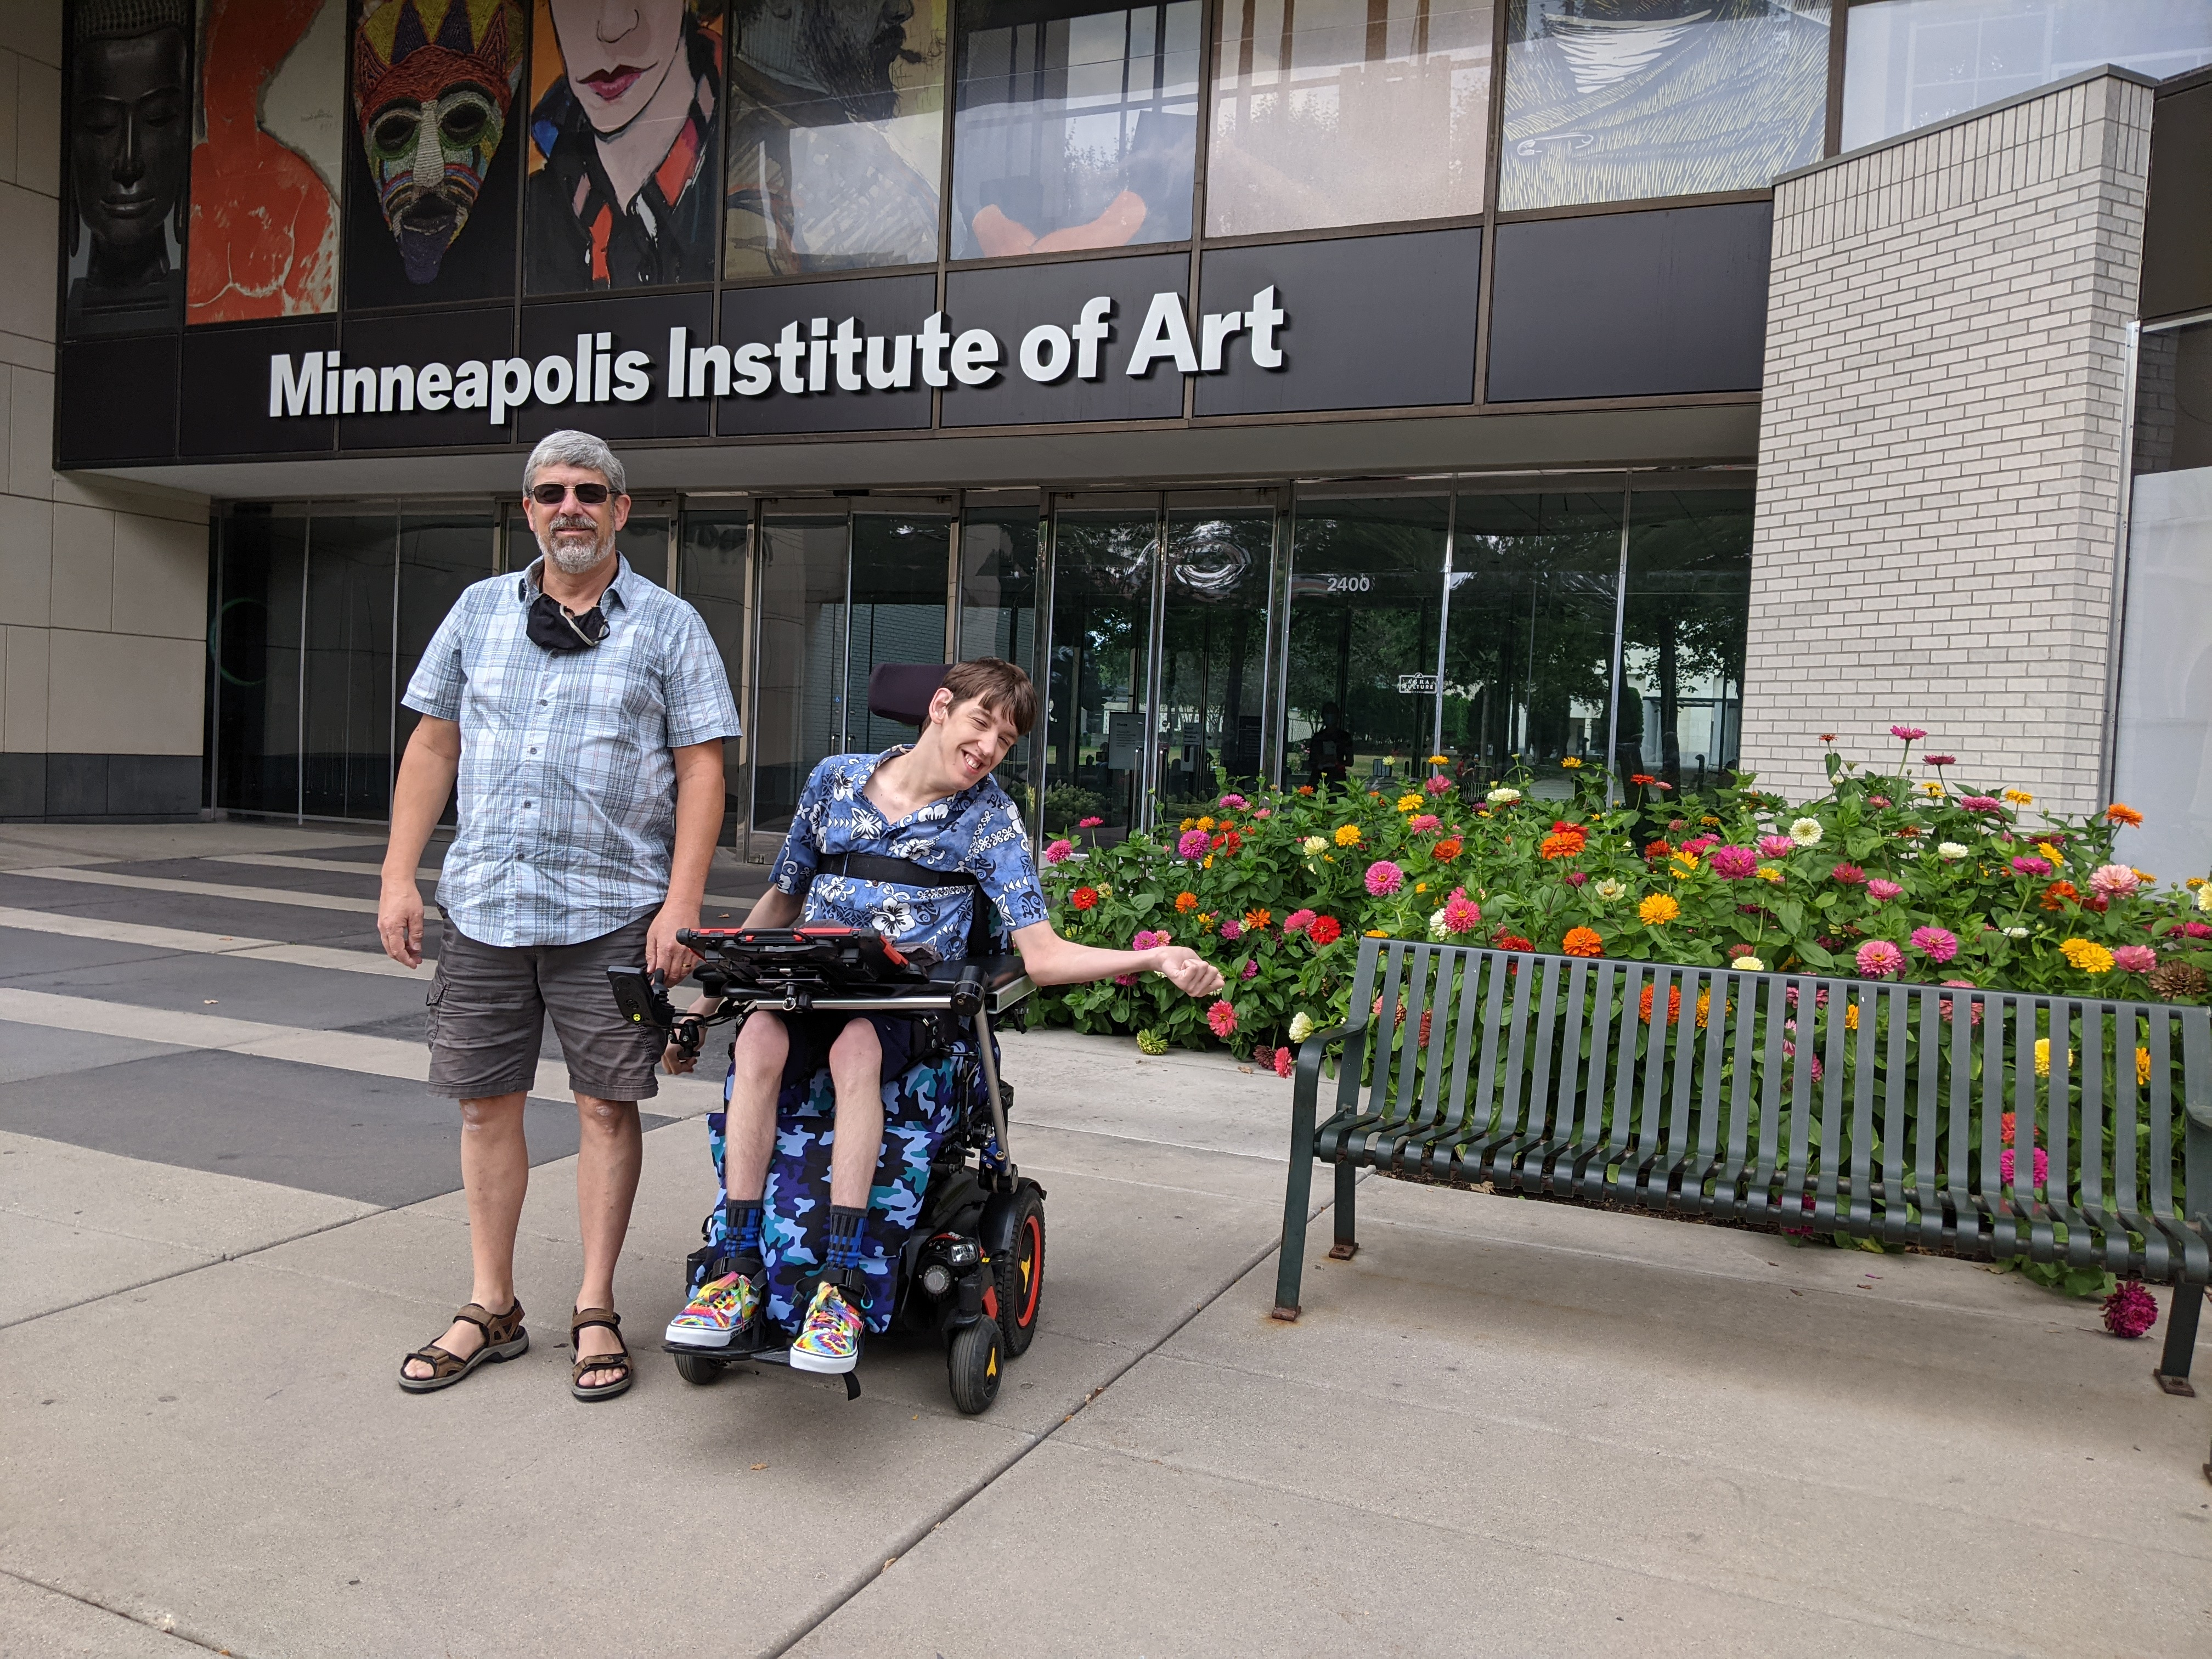 Justin in wheelchair, his dad, in front of Minneapolis Institute of Arts entrance, dahlias blooming